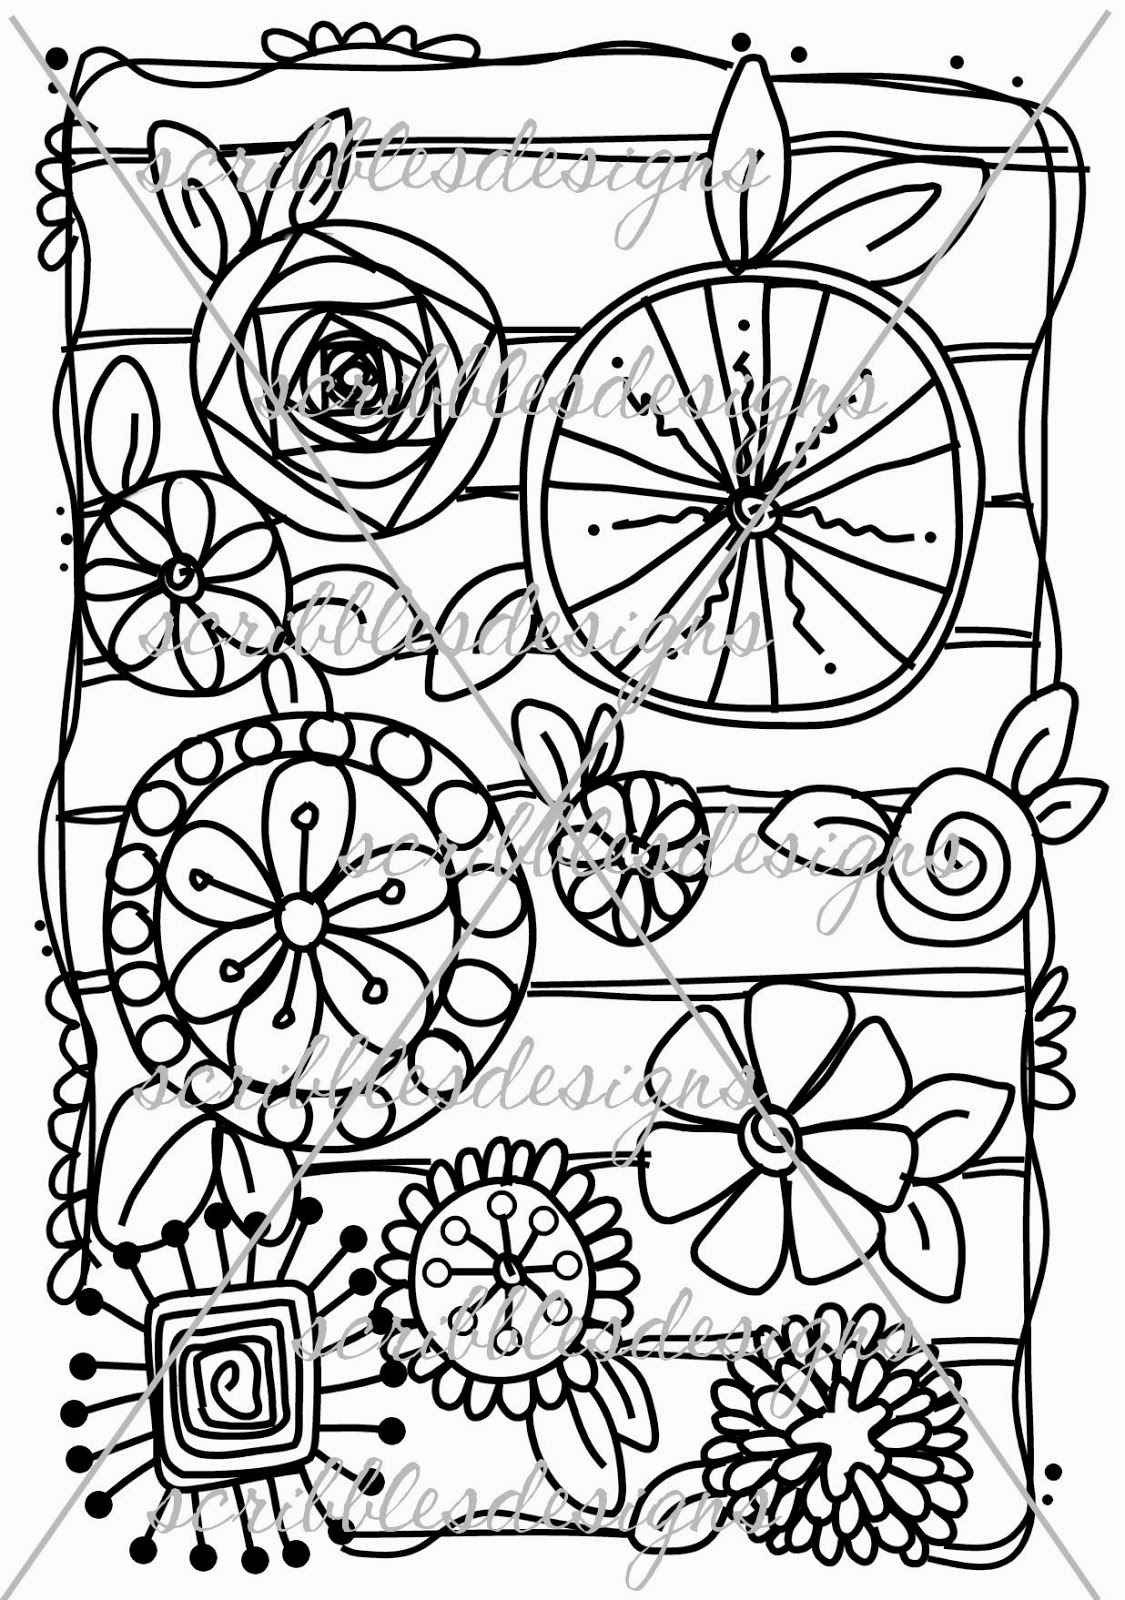 Free let s doodle coloring pages